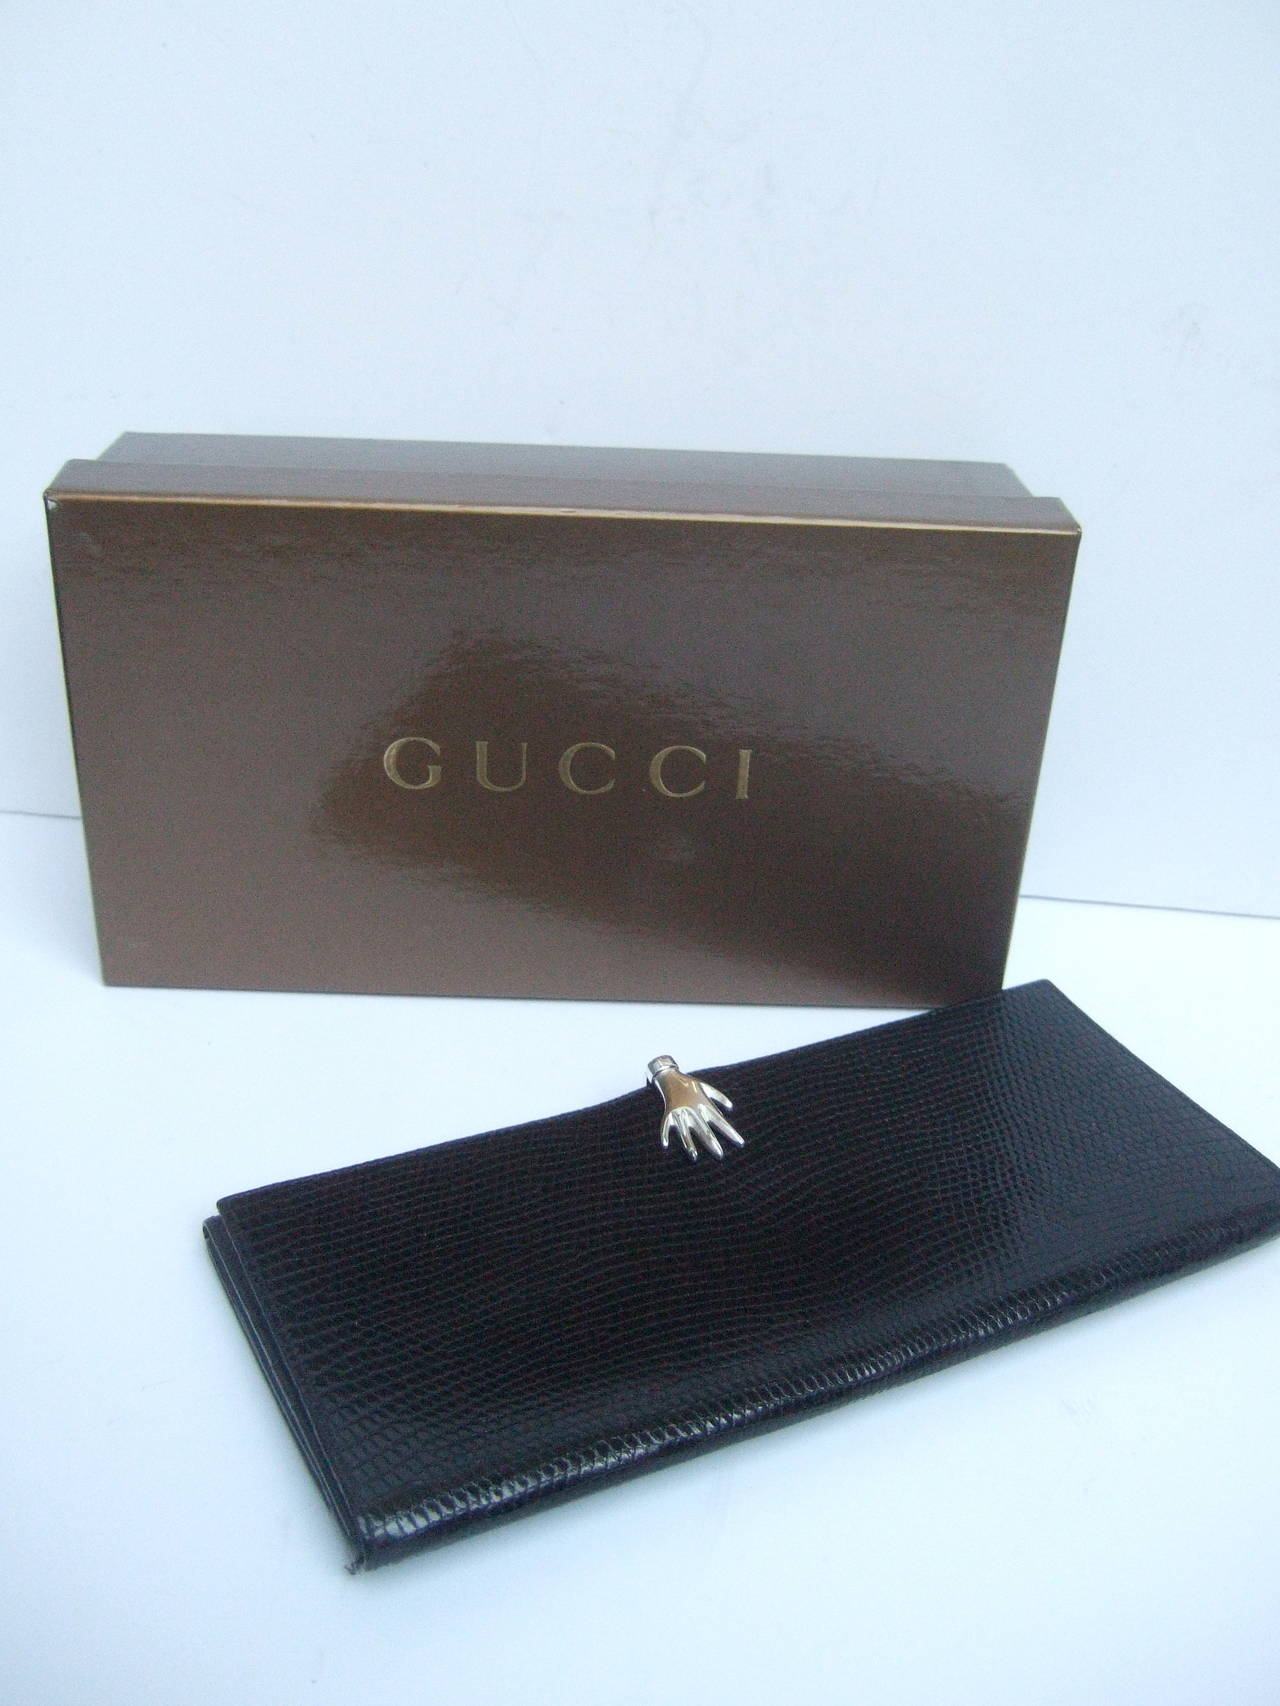 6704c900c98 Gucci Rare Sterling Hand Clasp Embossed Black Leather Wallet in Gucci box  In Good Condition For